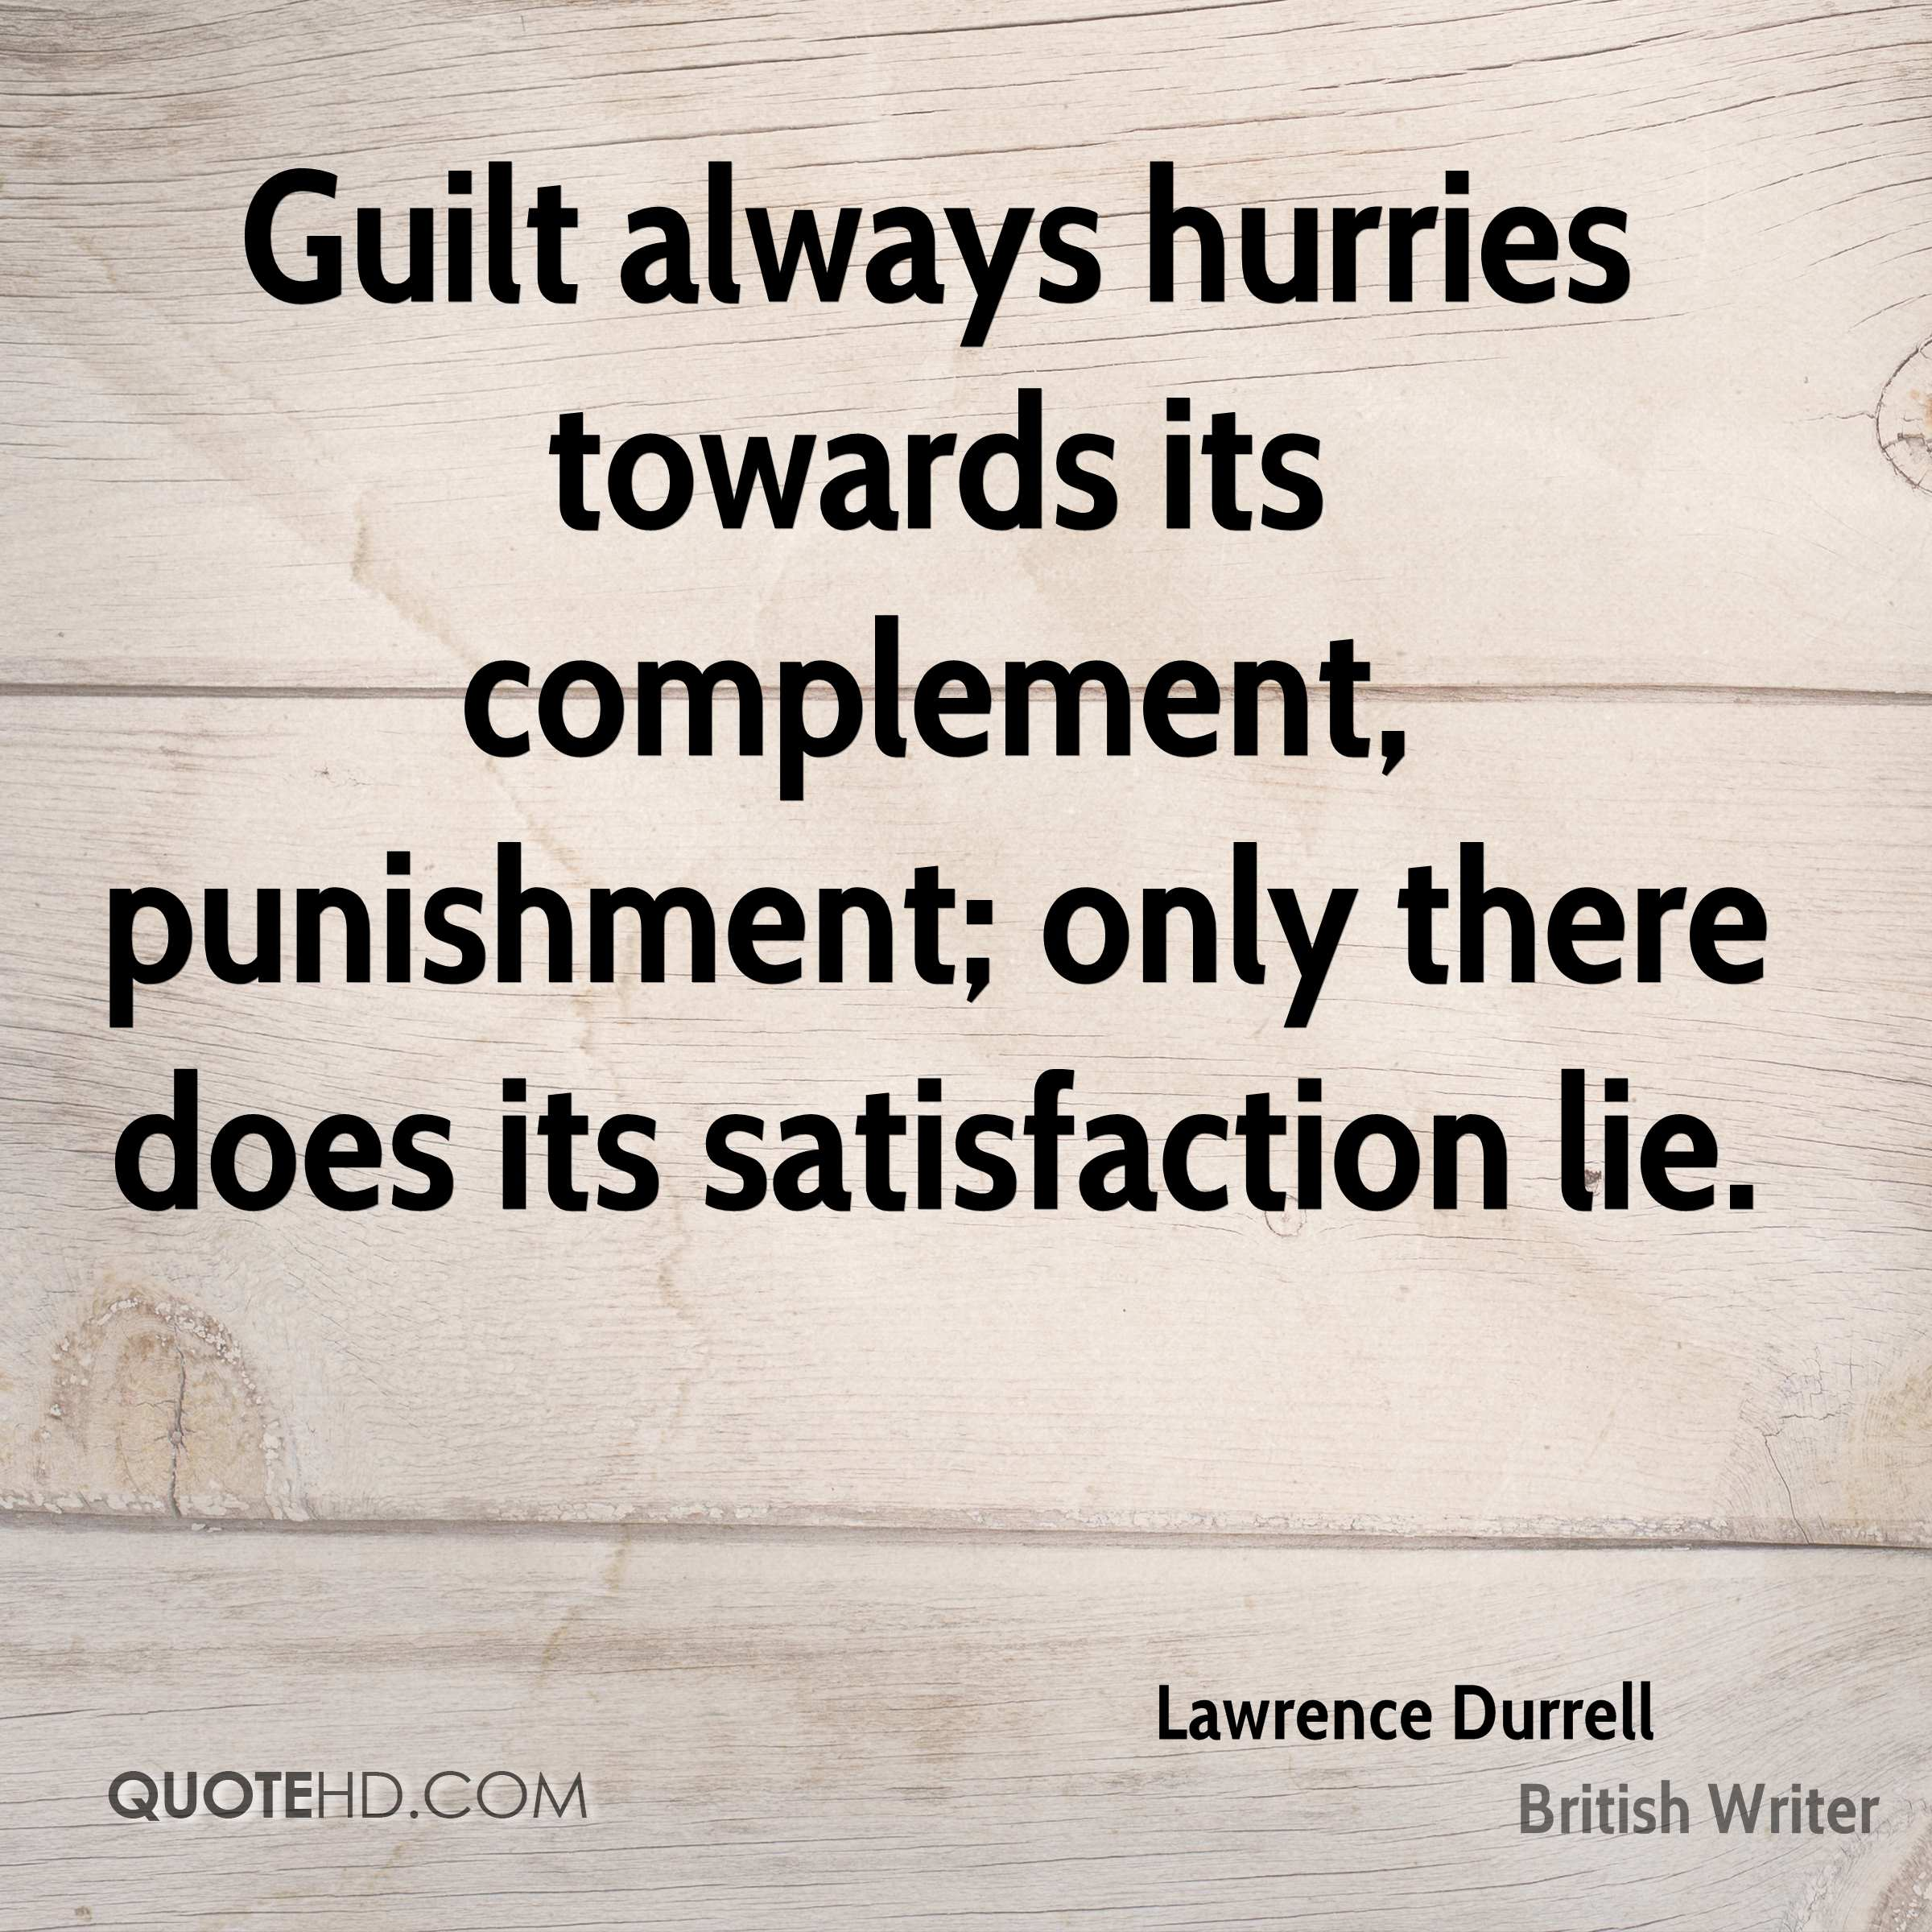 Guilt always hurries towards its complement, punishment; only there does its satisfaction lie.